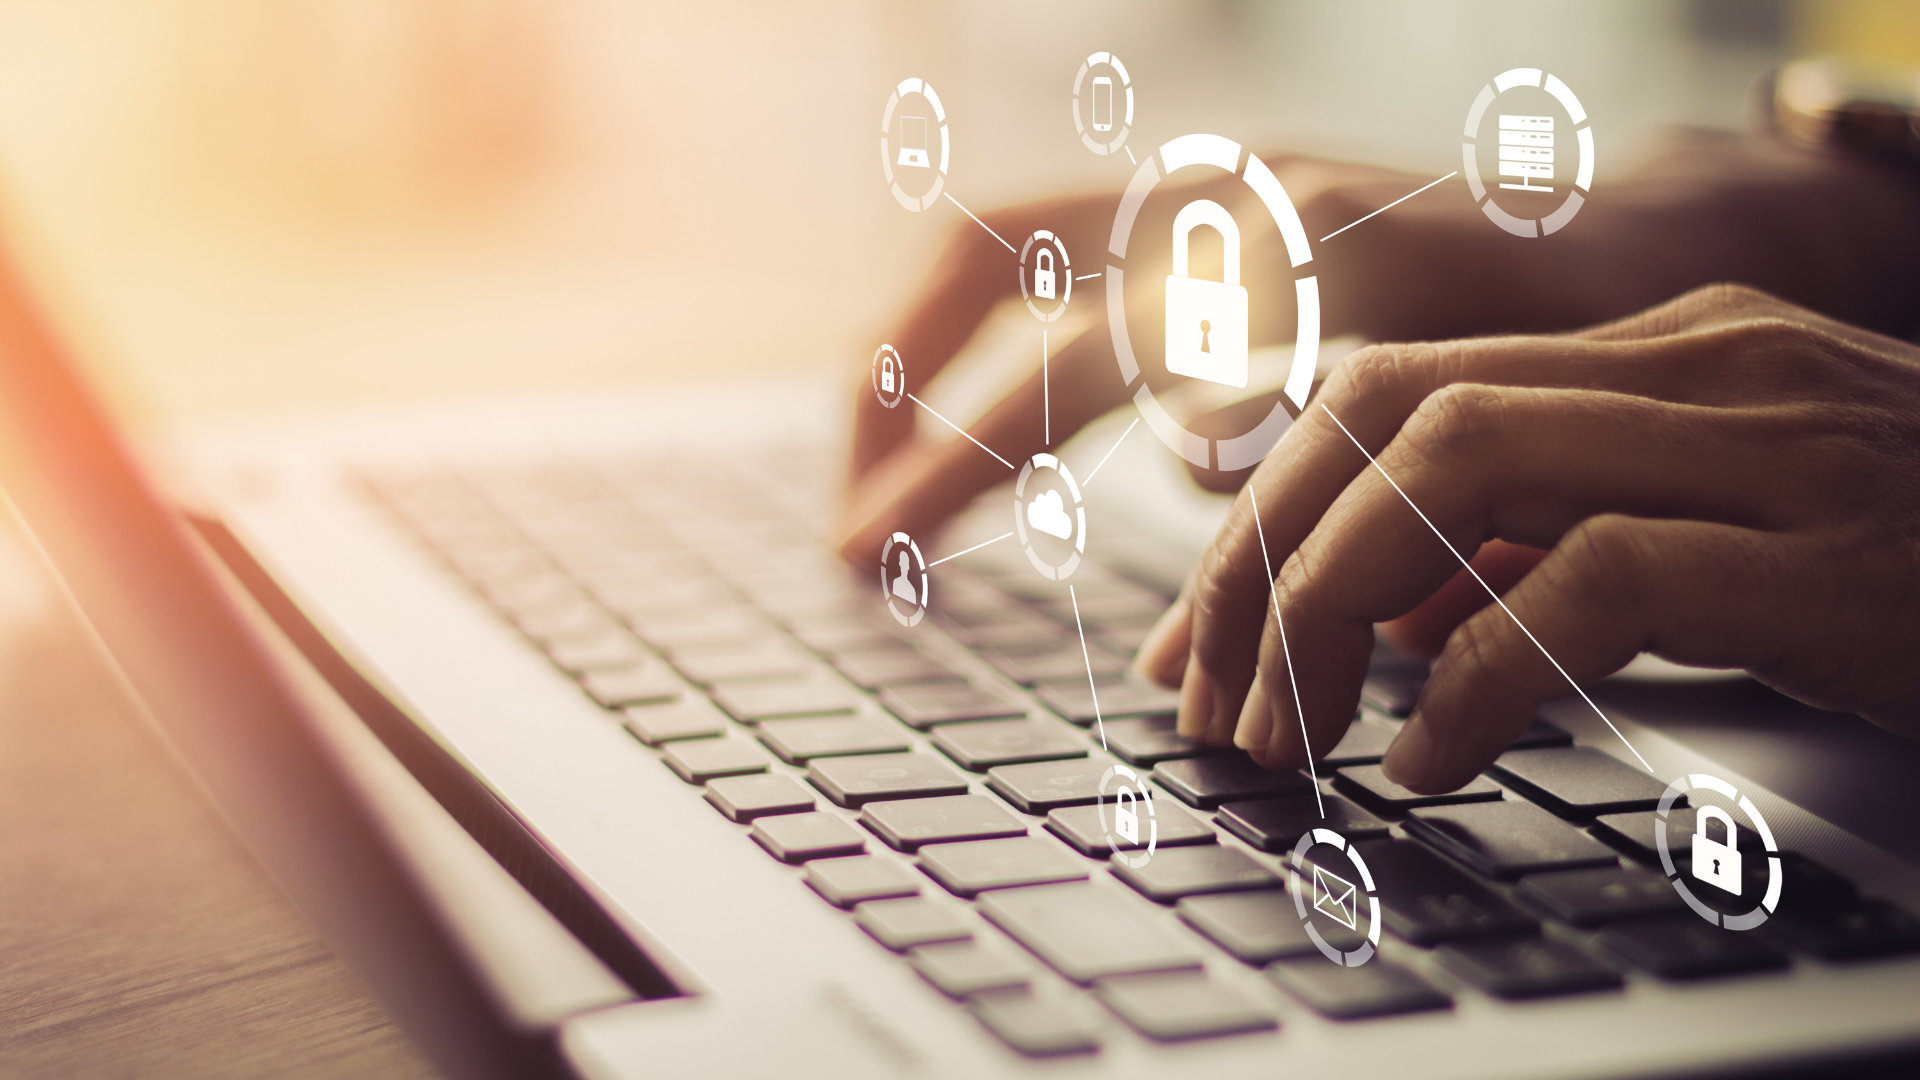 Data Protection Compliance: What's happening in 2021 and what does the future hold? webinar featured image